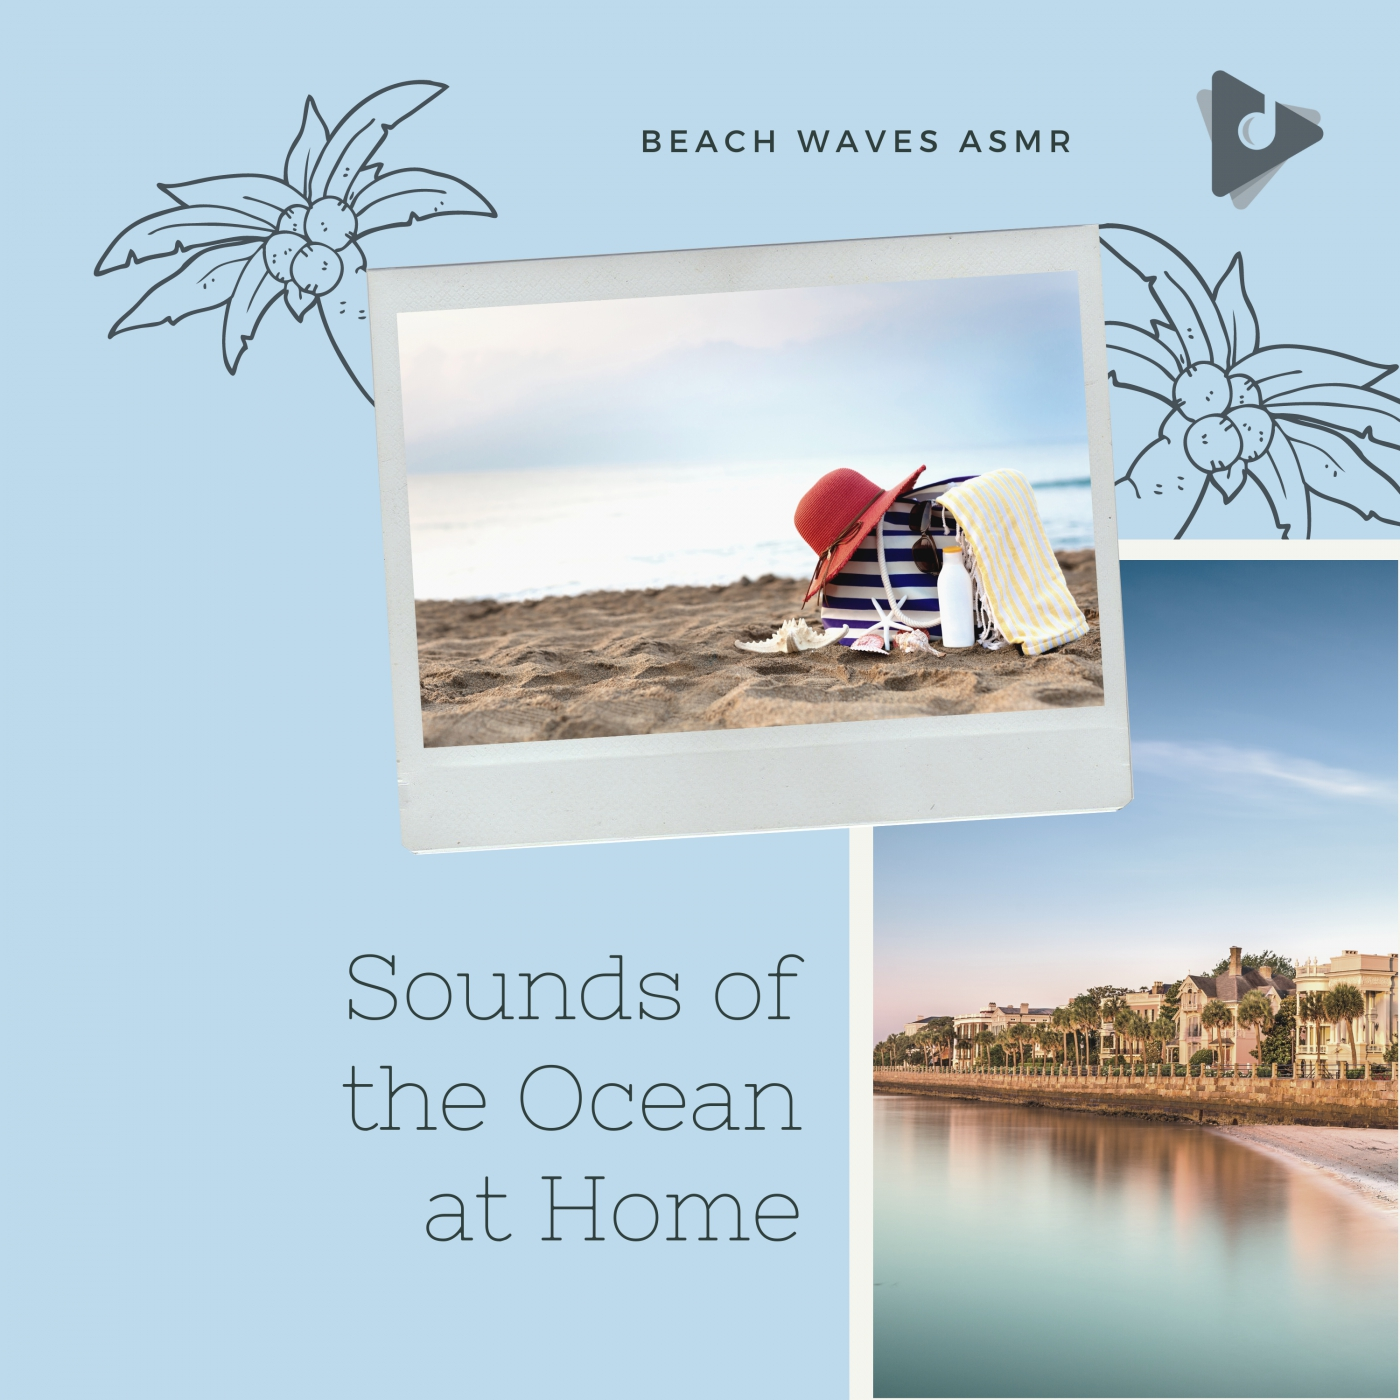 Sounds of the Ocean at Home